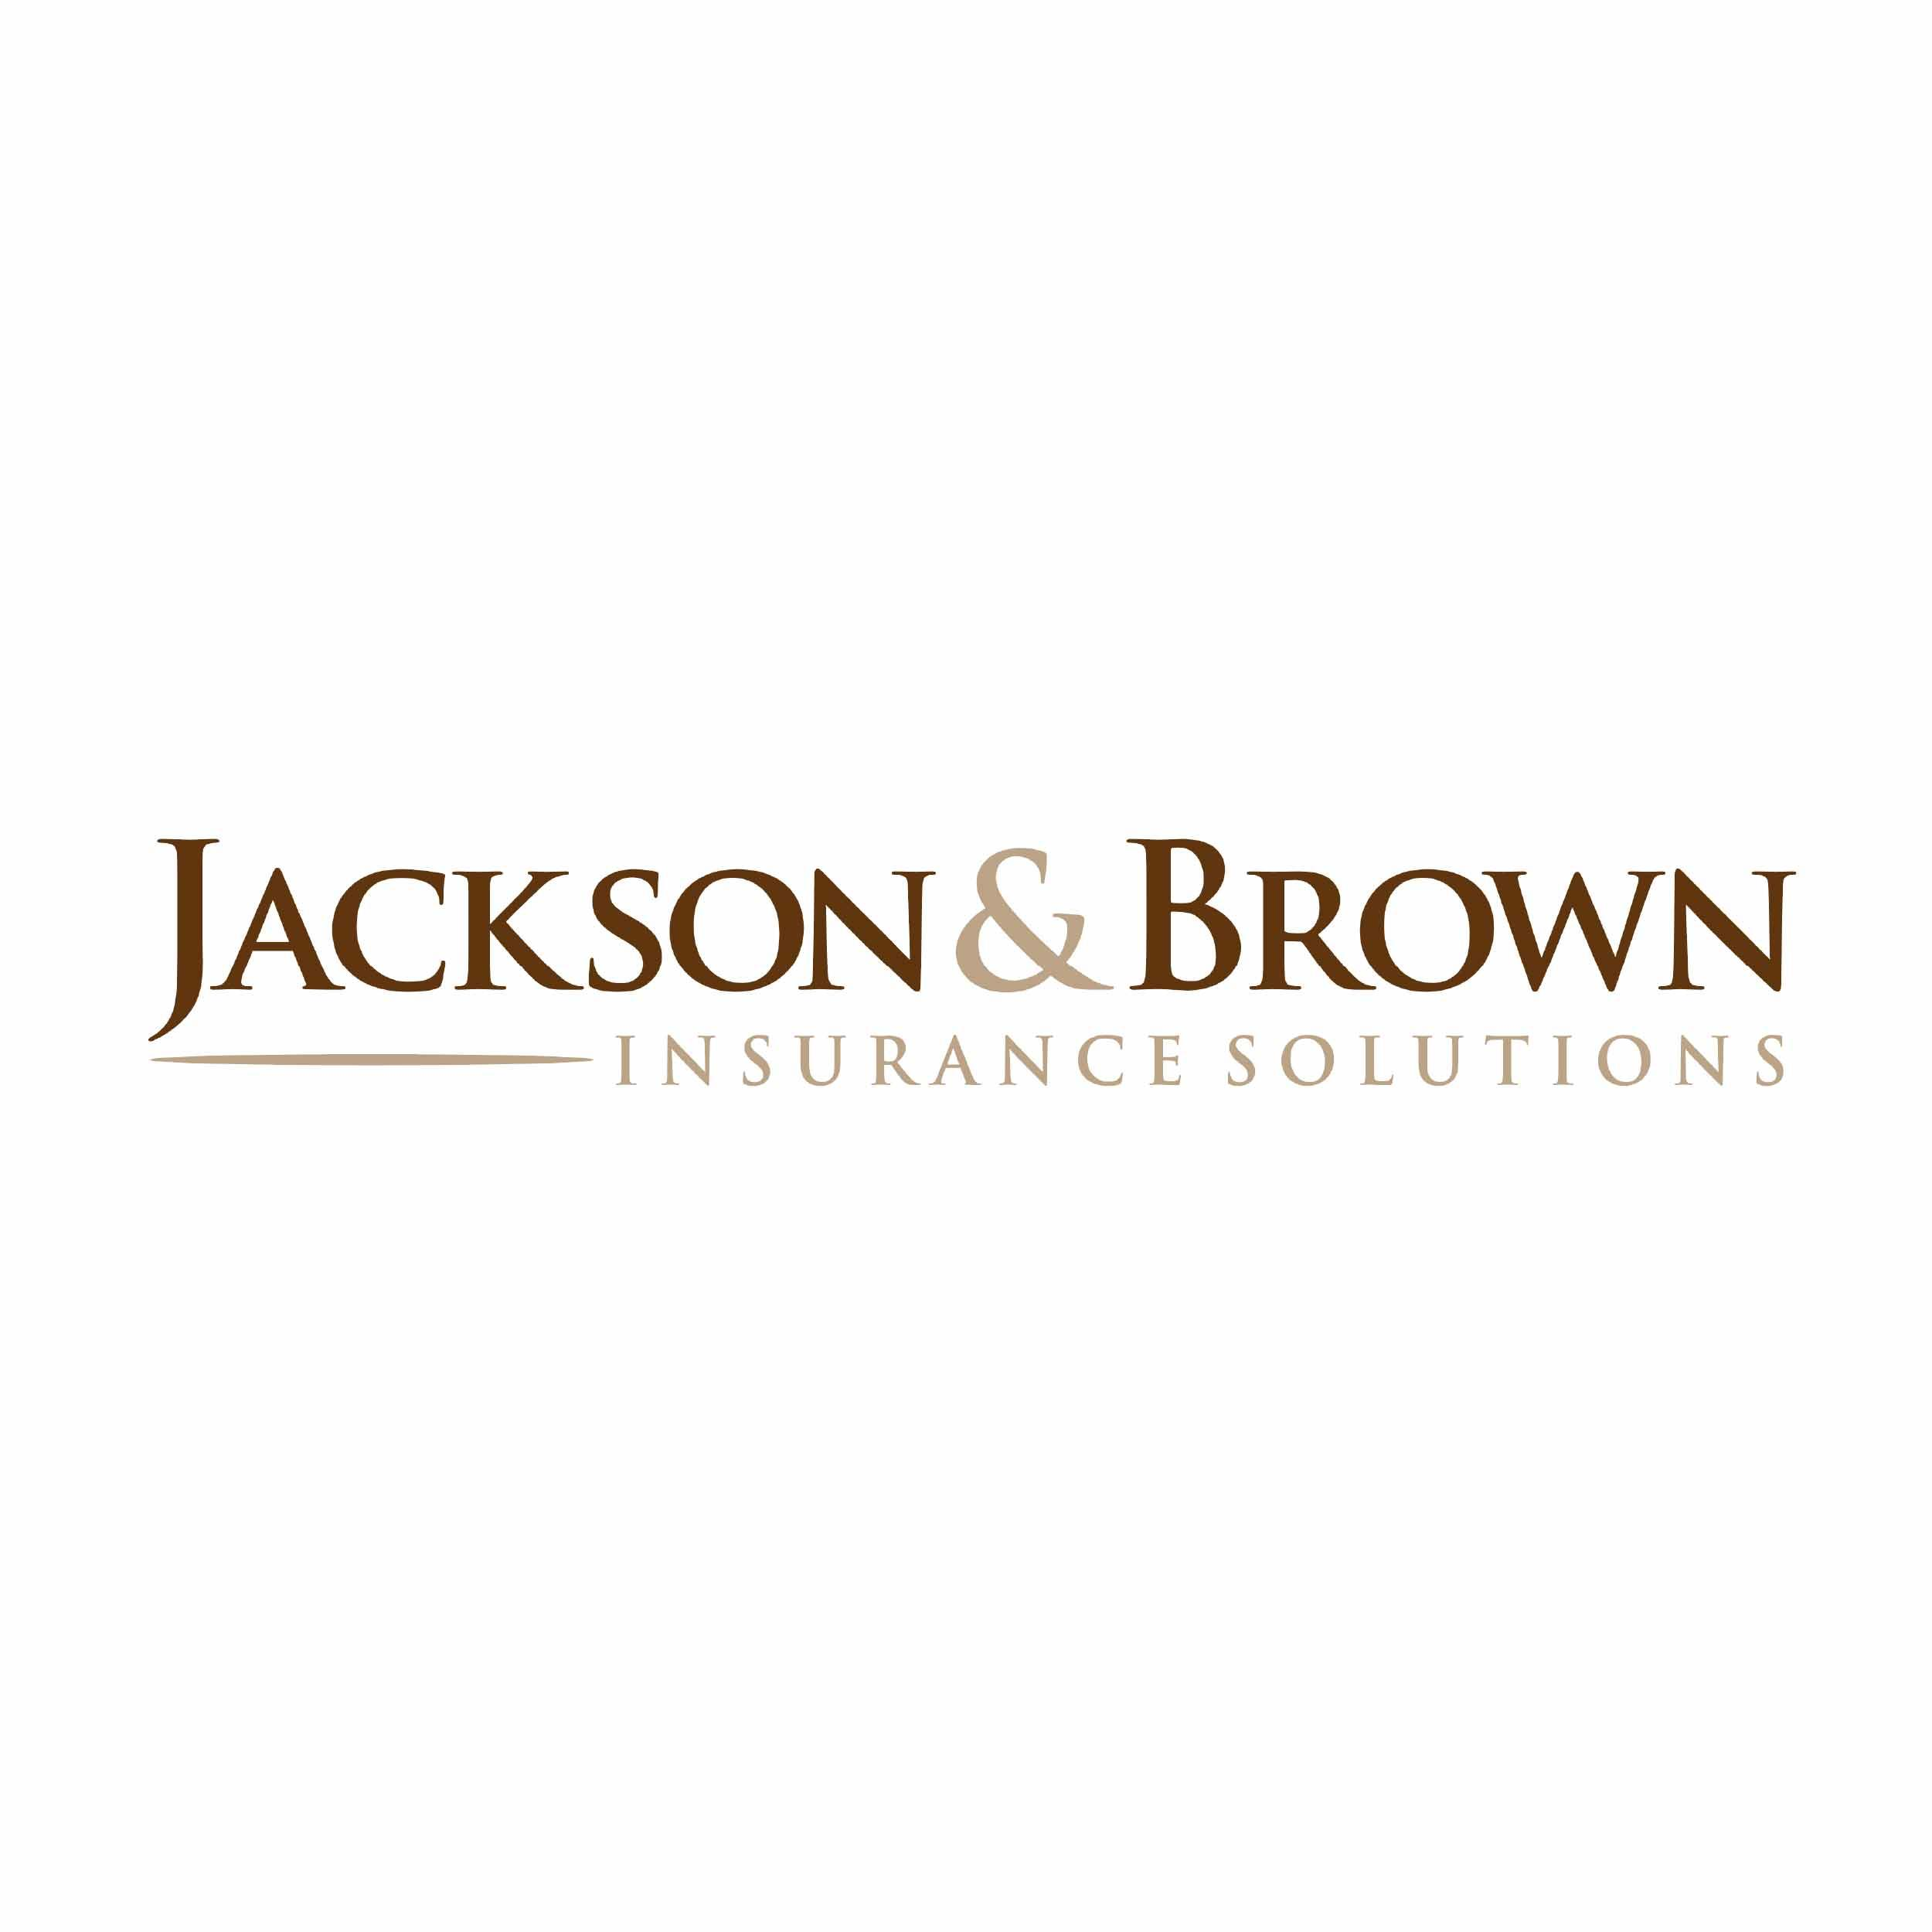 Jackson & Brown Insurance Solutions